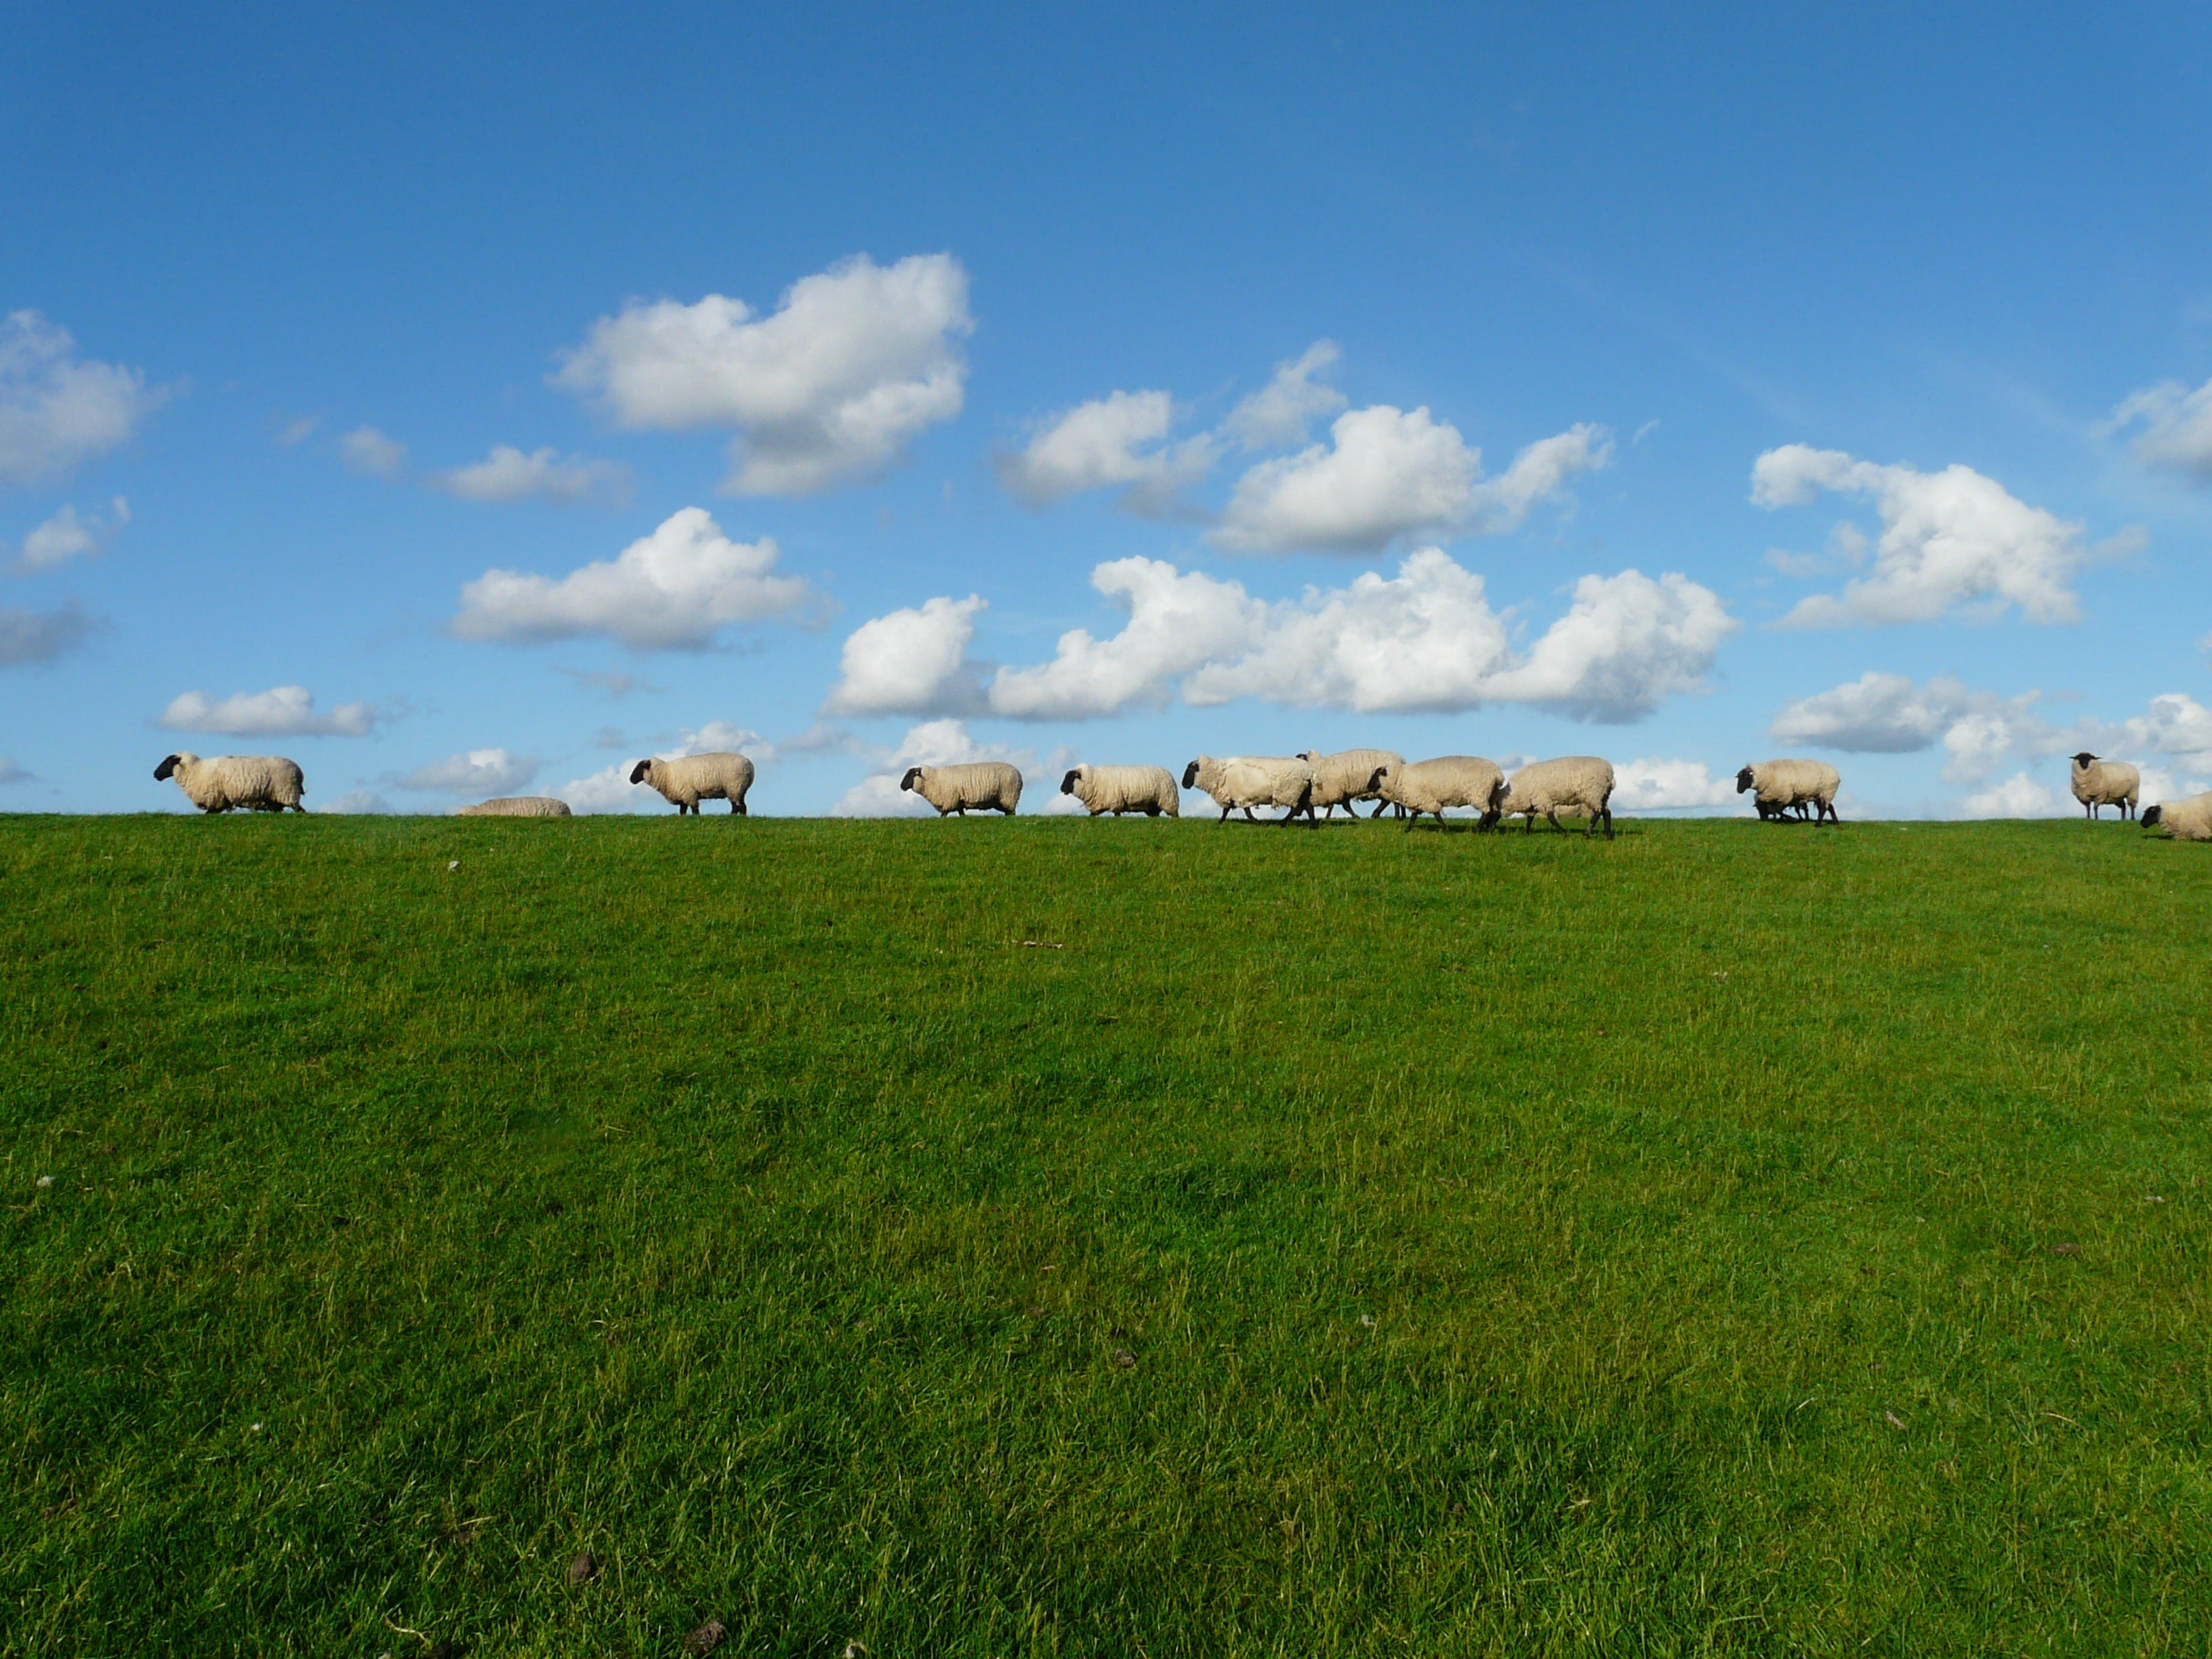 11 White Sheep in the Grass Field